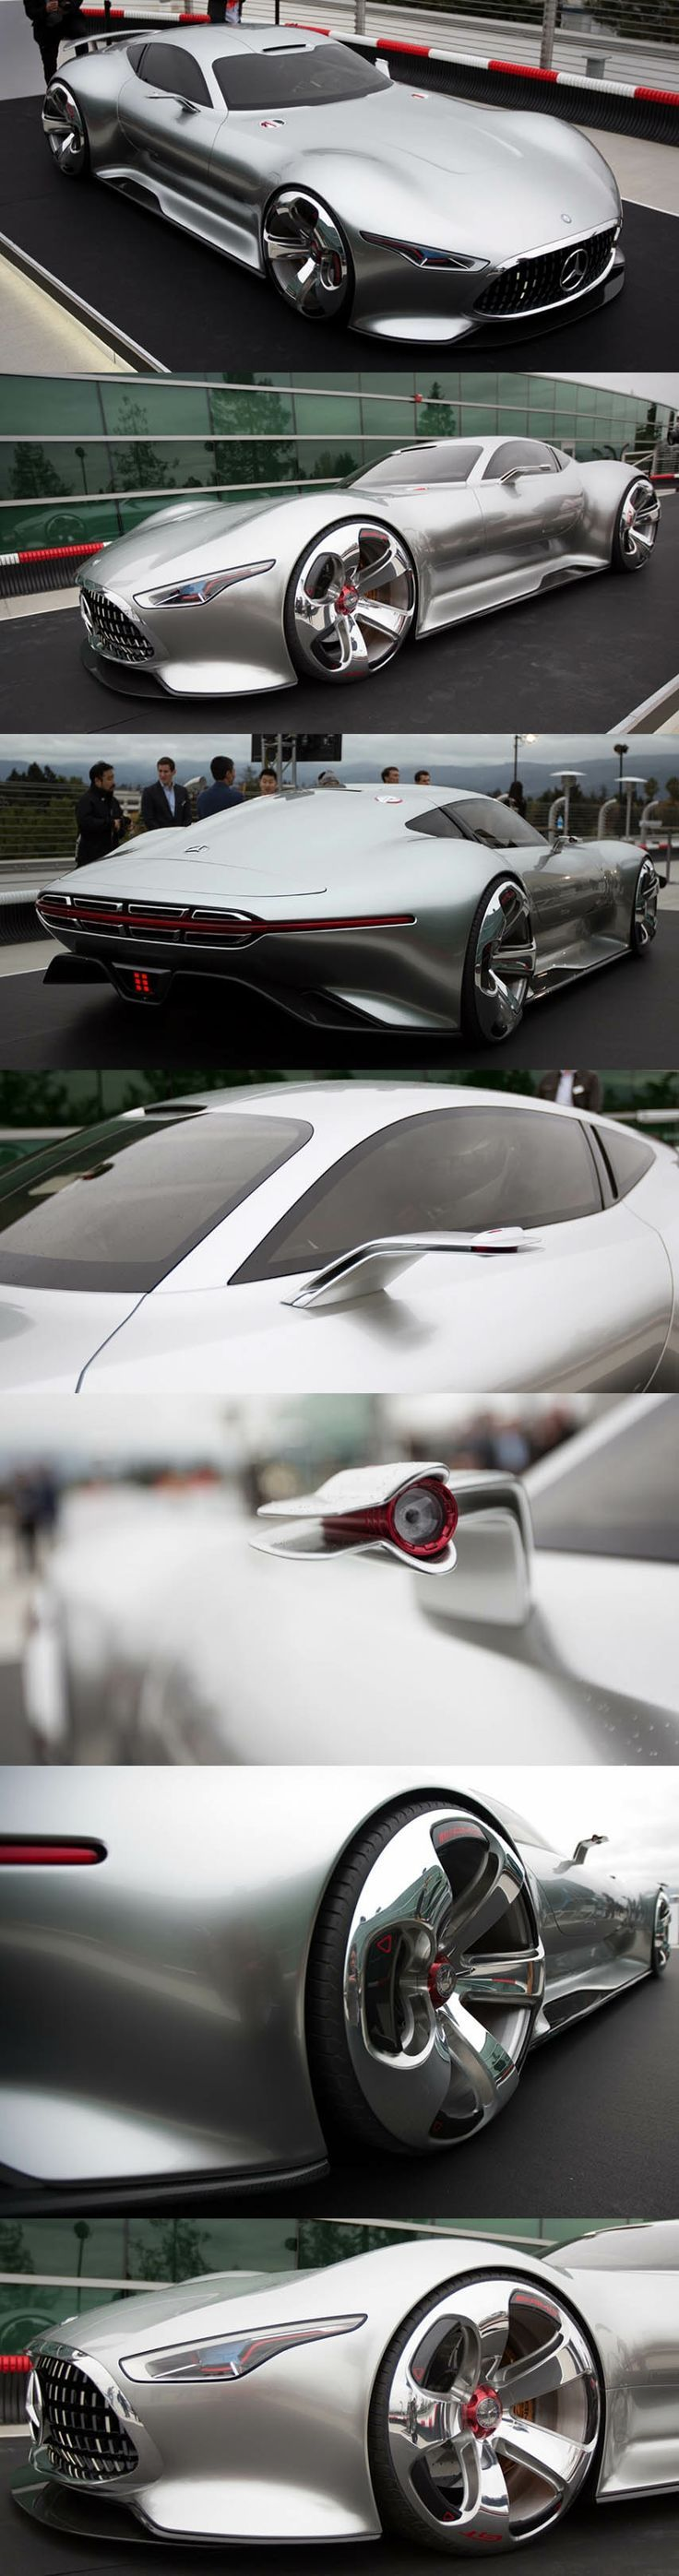 Captivating Mercedes AMG Vision Gran Turismo Concept Car For Future